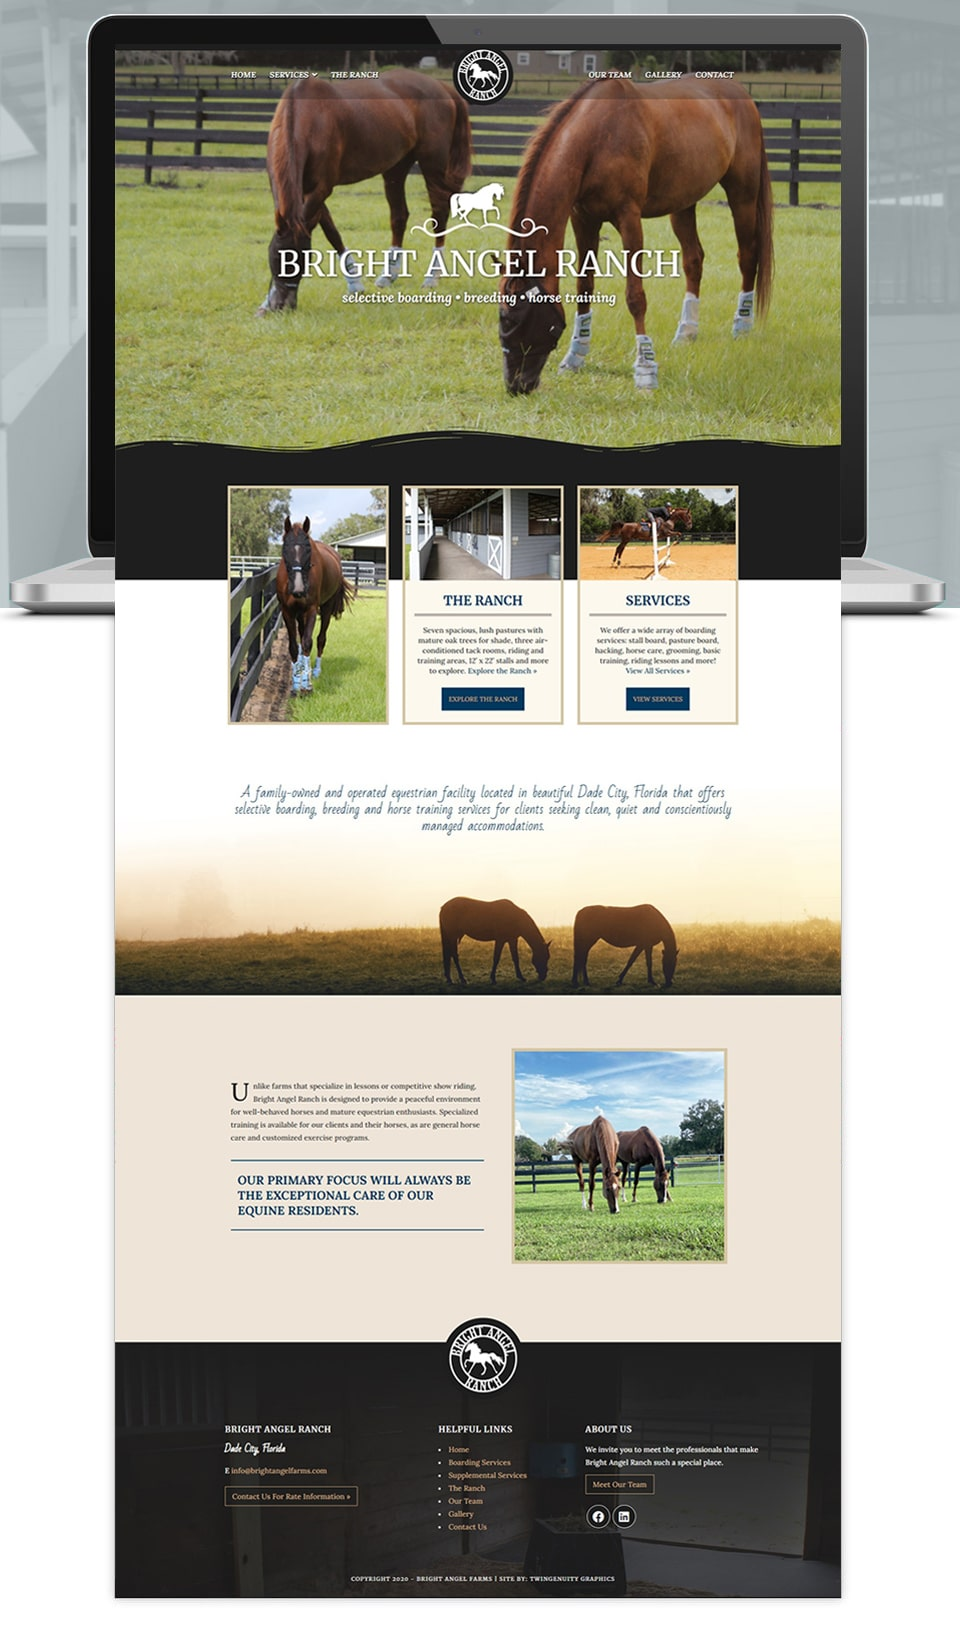 Bright Angel Ranch website home page design